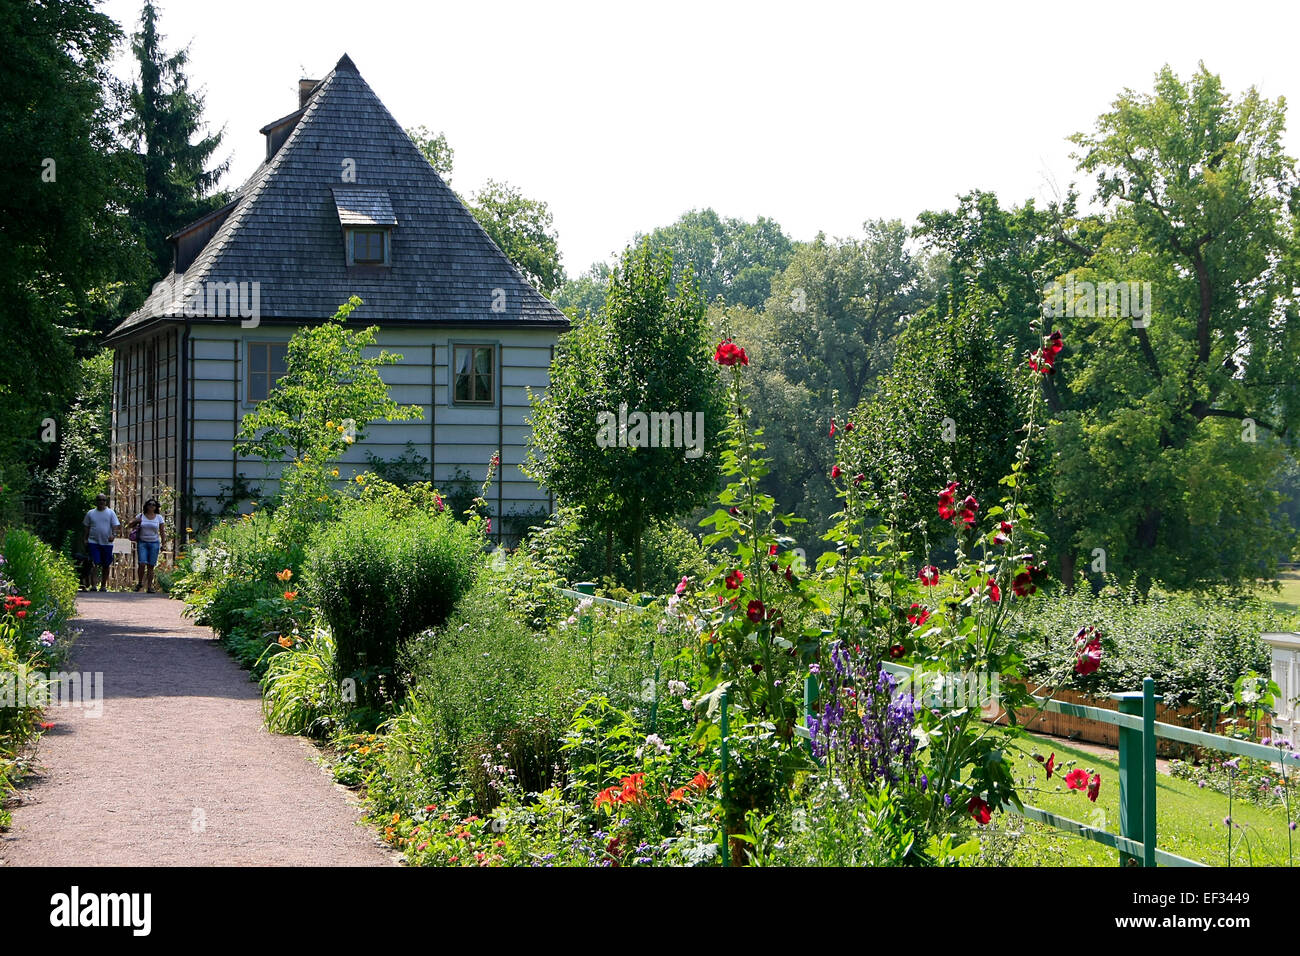 city park weimar stockfotos city park weimar bilder alamy. Black Bedroom Furniture Sets. Home Design Ideas